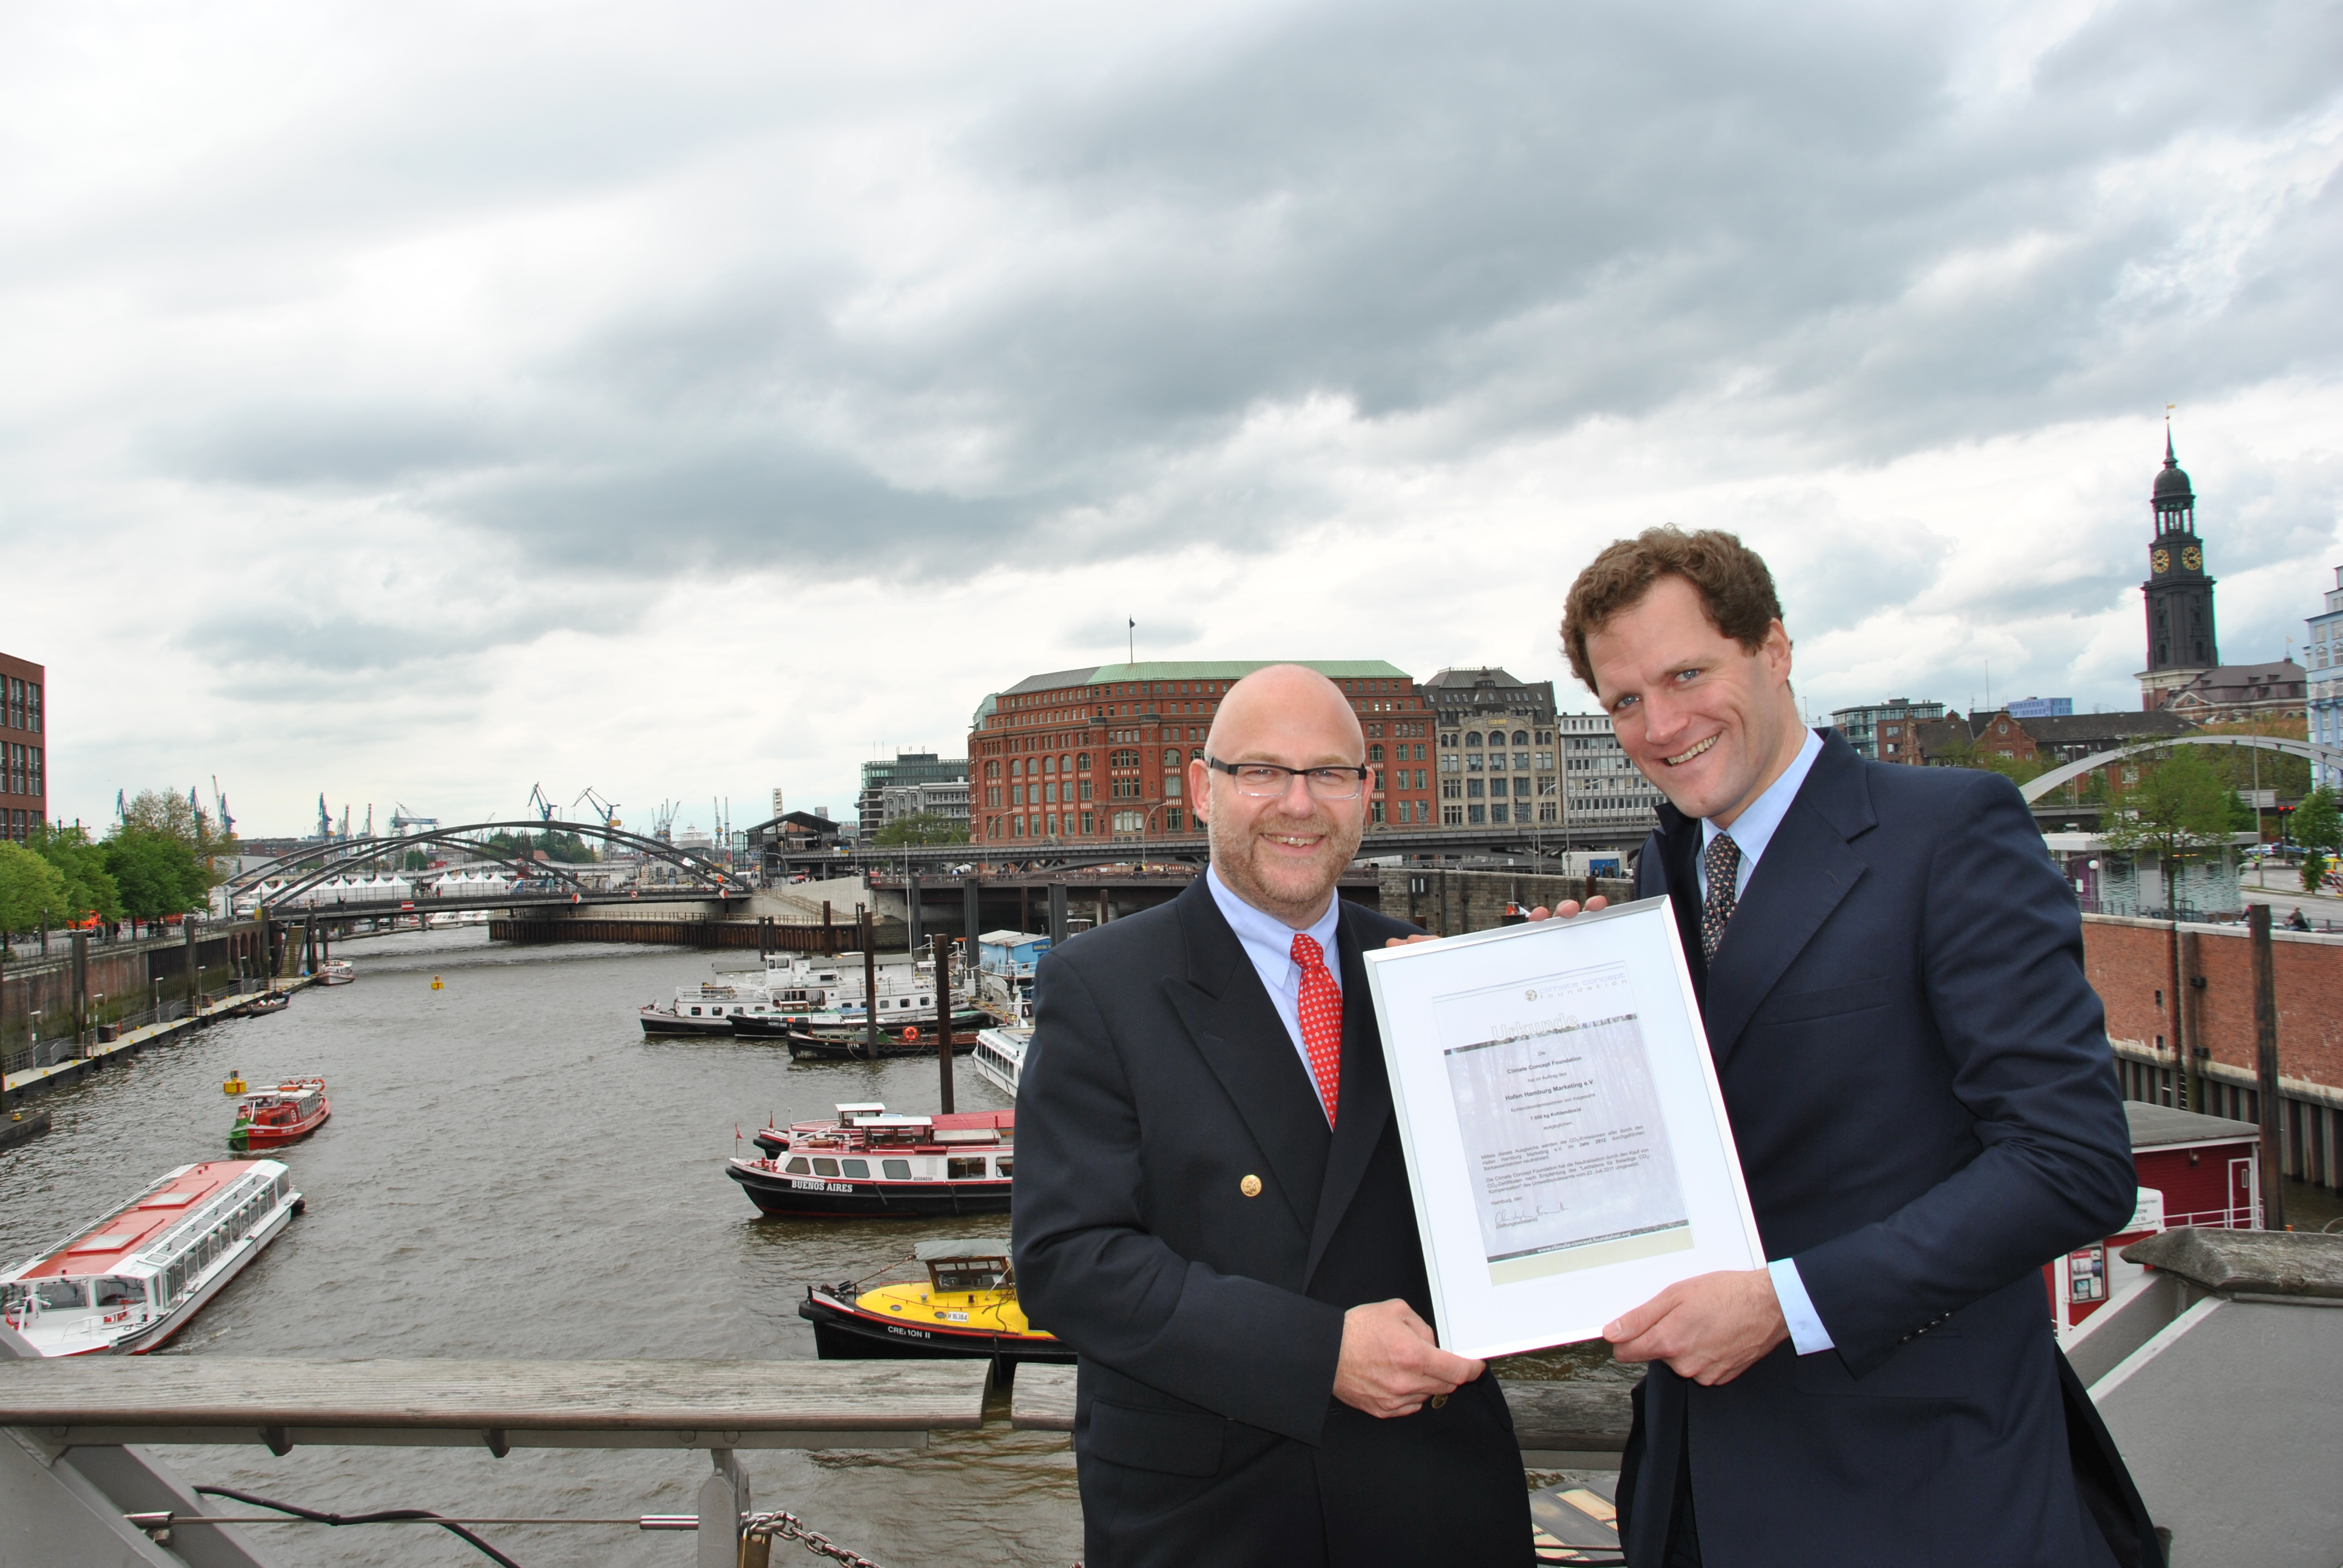 CCF Excutive Director Christopher Brandt (right) hands over the official document that confirms the CO2-neutralization to the Excutive Director of Port Hamburg Marketing, Axel Mattern